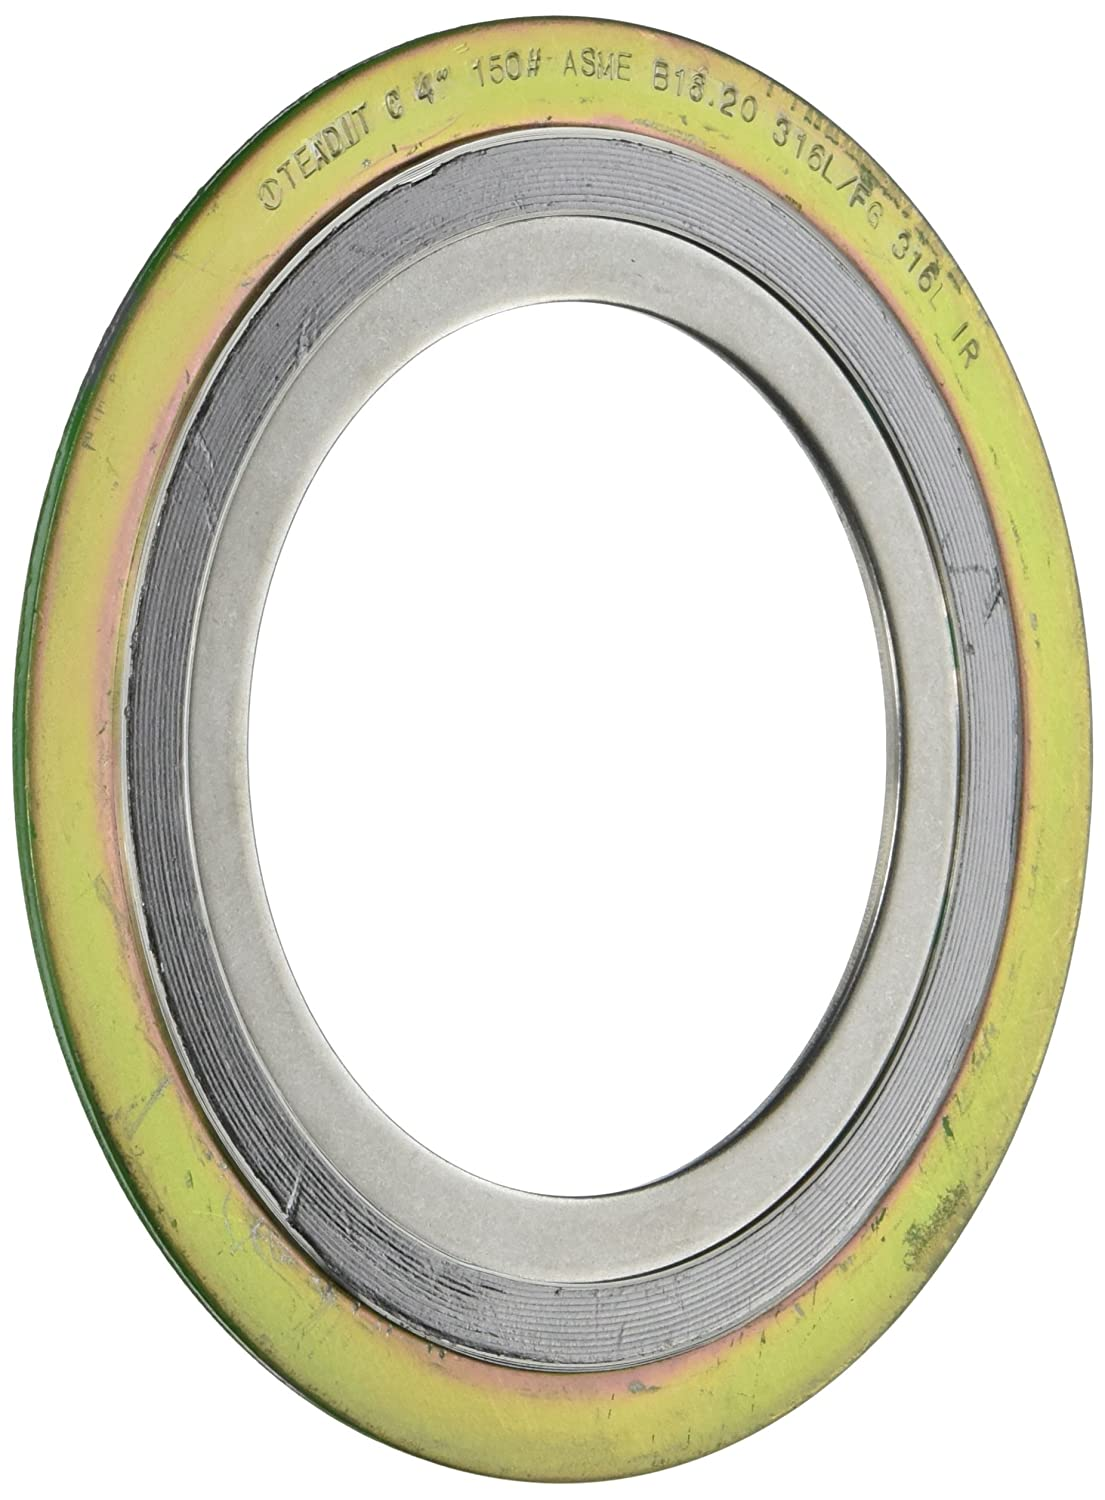 Pack of 6 Pack of 6 1-1//2 Pipe Size x 150# Class Flange x 316SS//Flexible Graphite Sterling Seal /& Supply SSS 9000IR1500316GR150X6 Spiral Wound Gasket with 316SS Inner Ring Inc. 1-1//2 Pipe Size x 150# Class Flange x 316SS//Flexible Graphite